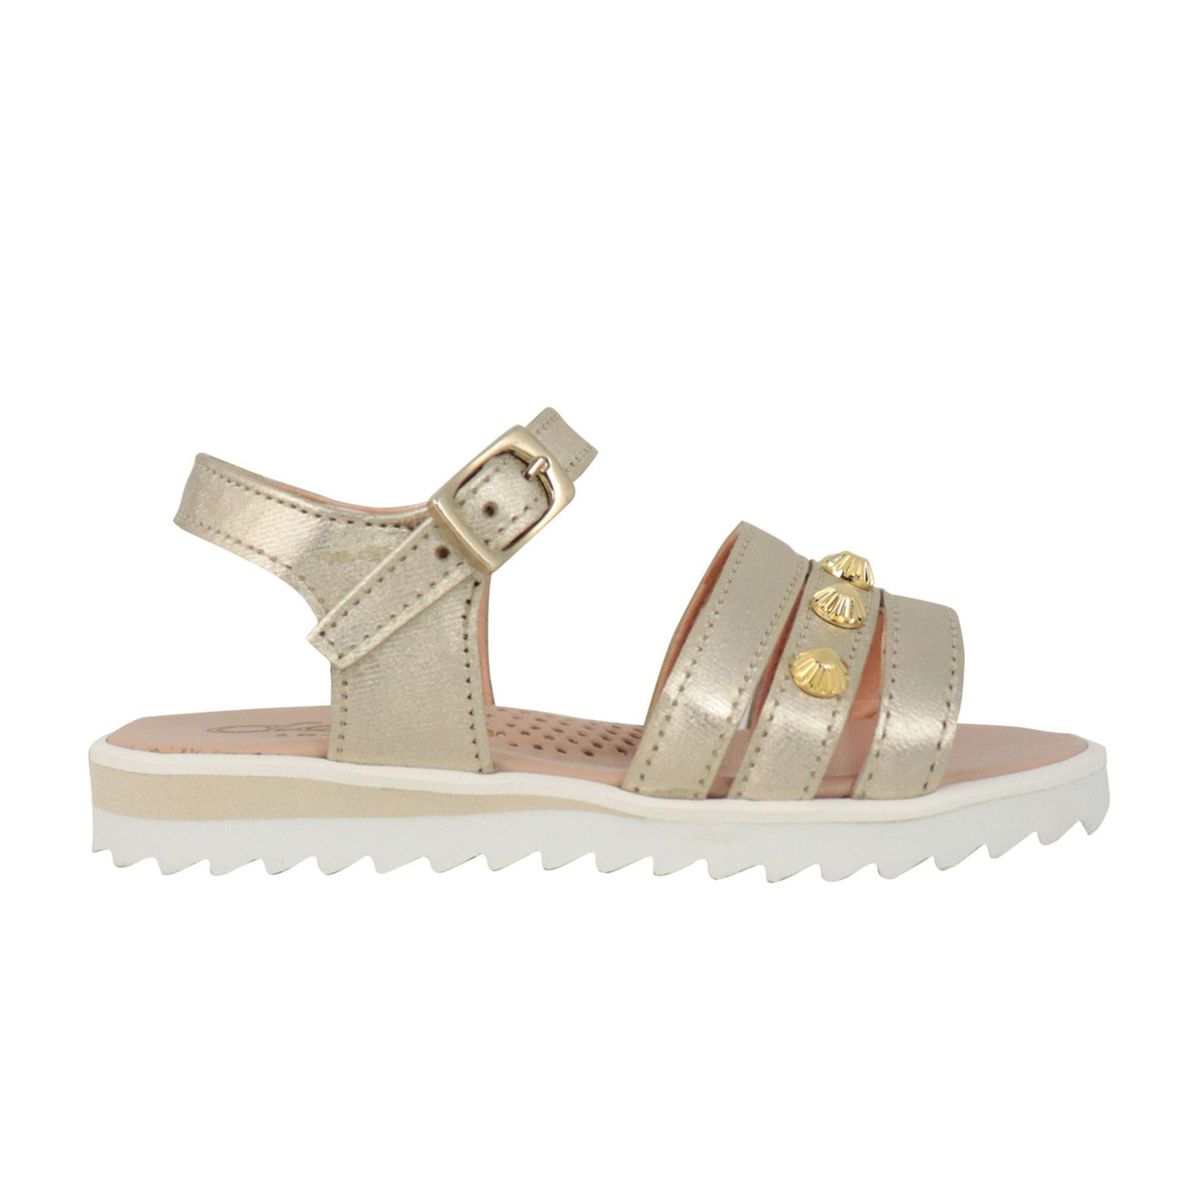 Leather sandal with buckle and studs Gold Clarys